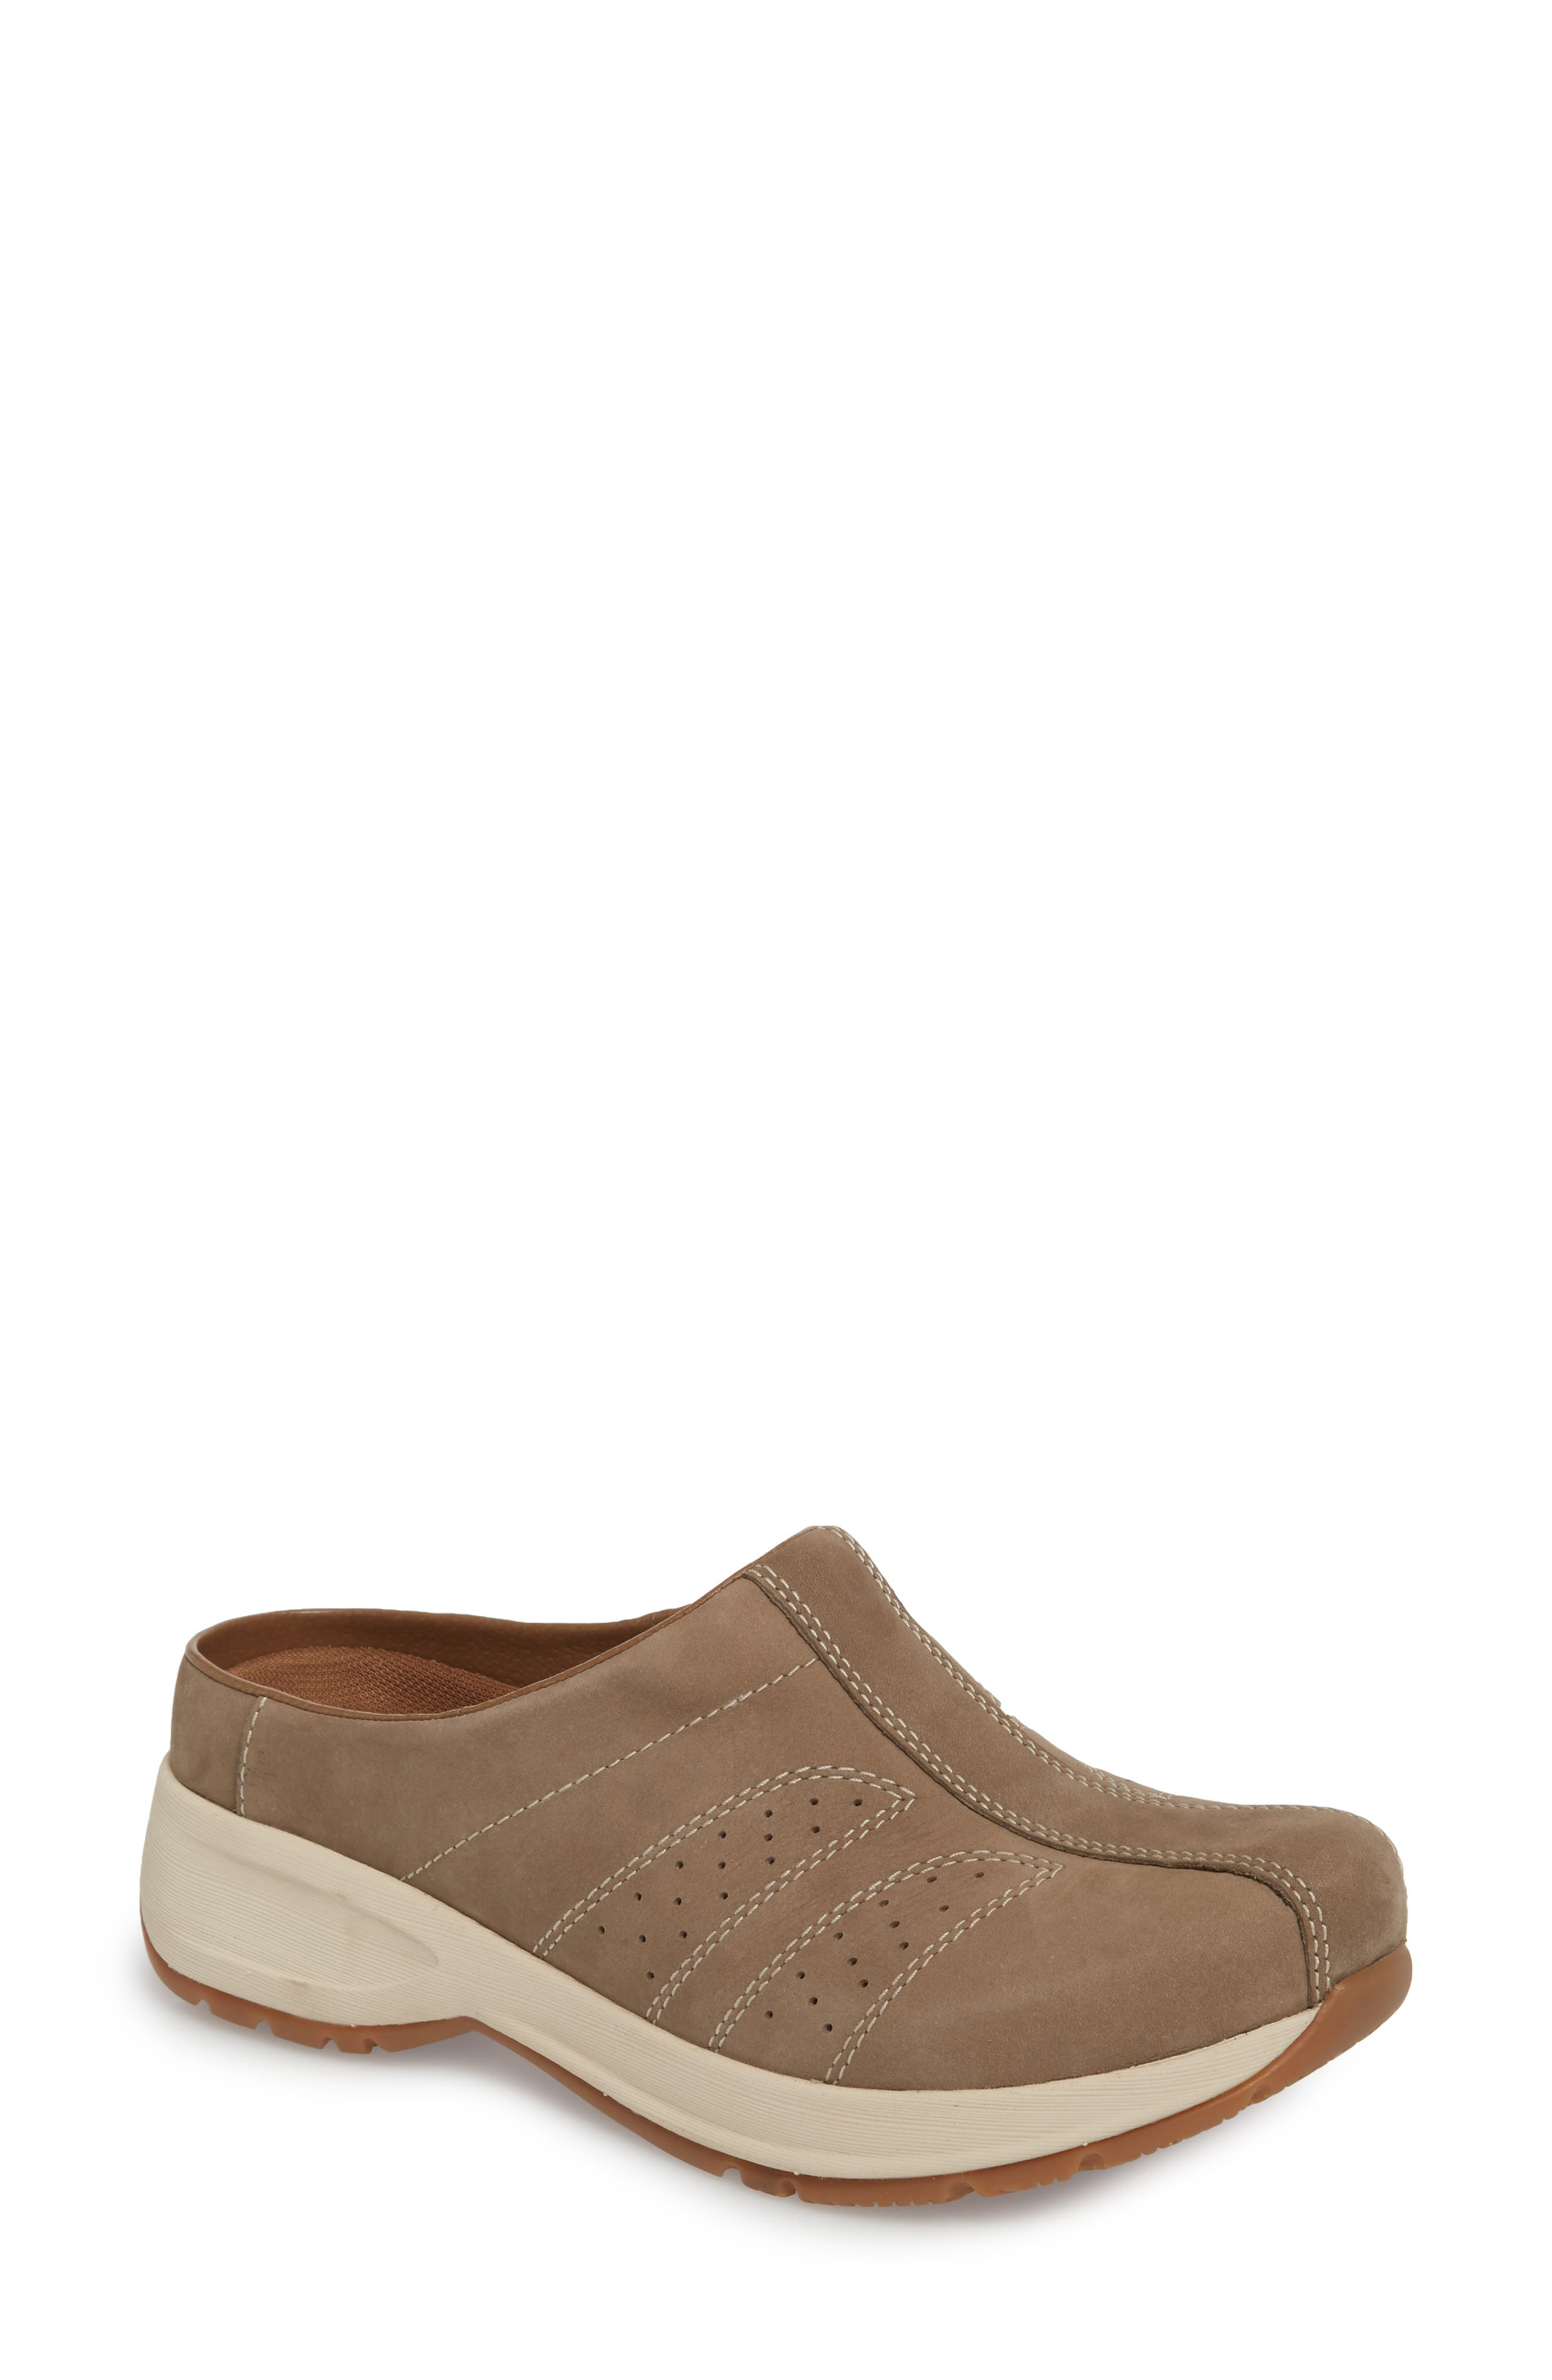 Dankso Shelly Mule,                             Main thumbnail 1, color,                             TAUPE MILLED NUBUCK LEATHER